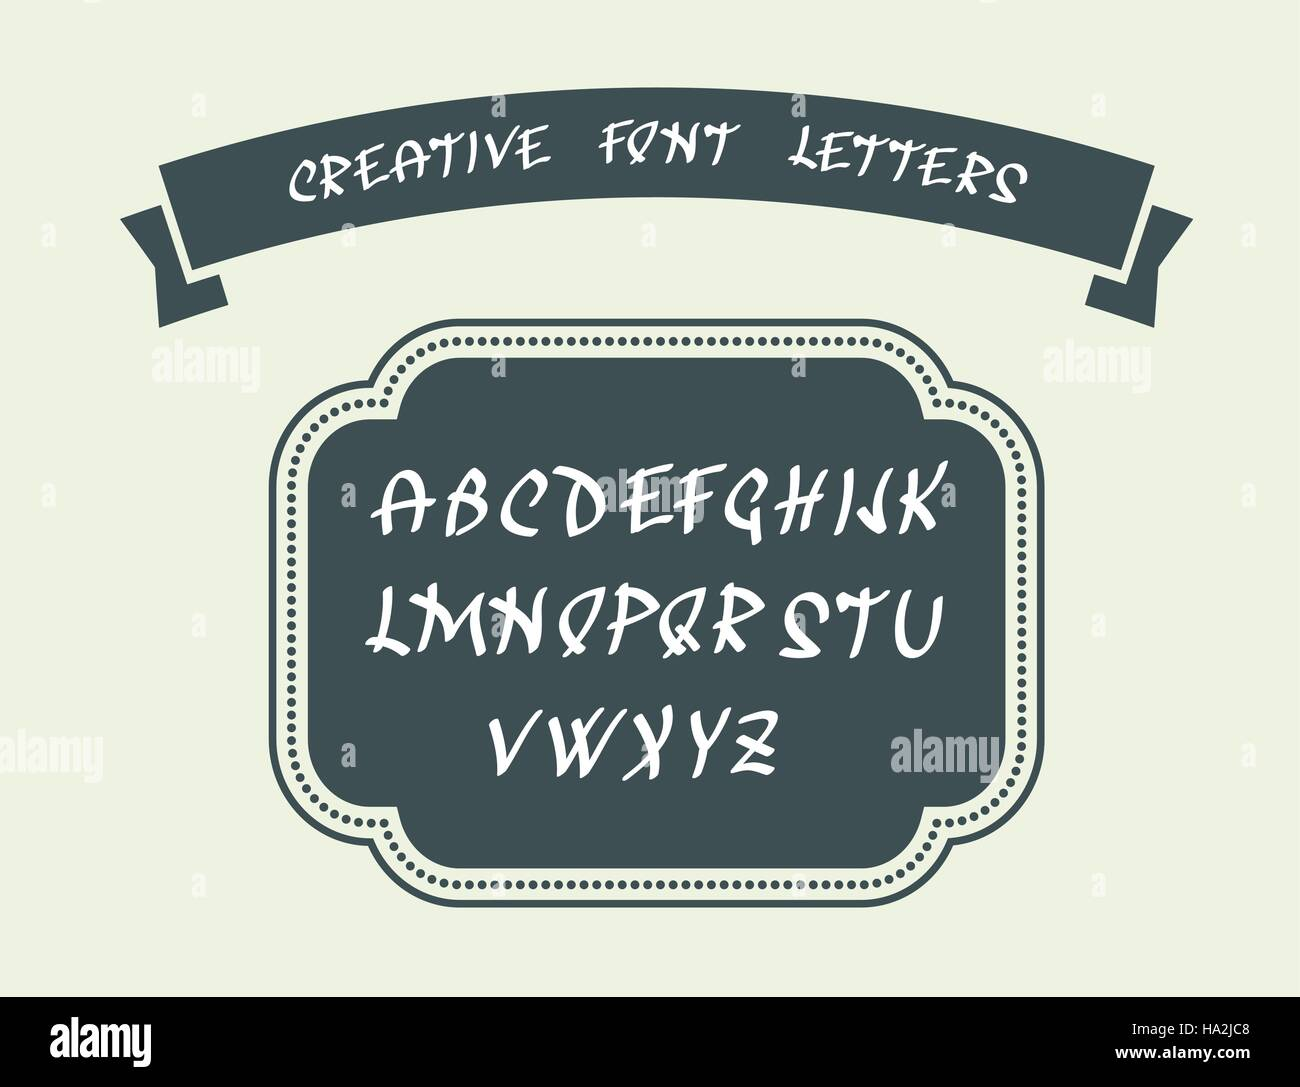 Uppercase English Alphabet Letters Handwritten Font Character Symbols Vector Illustration Creative For Your Design Ideas